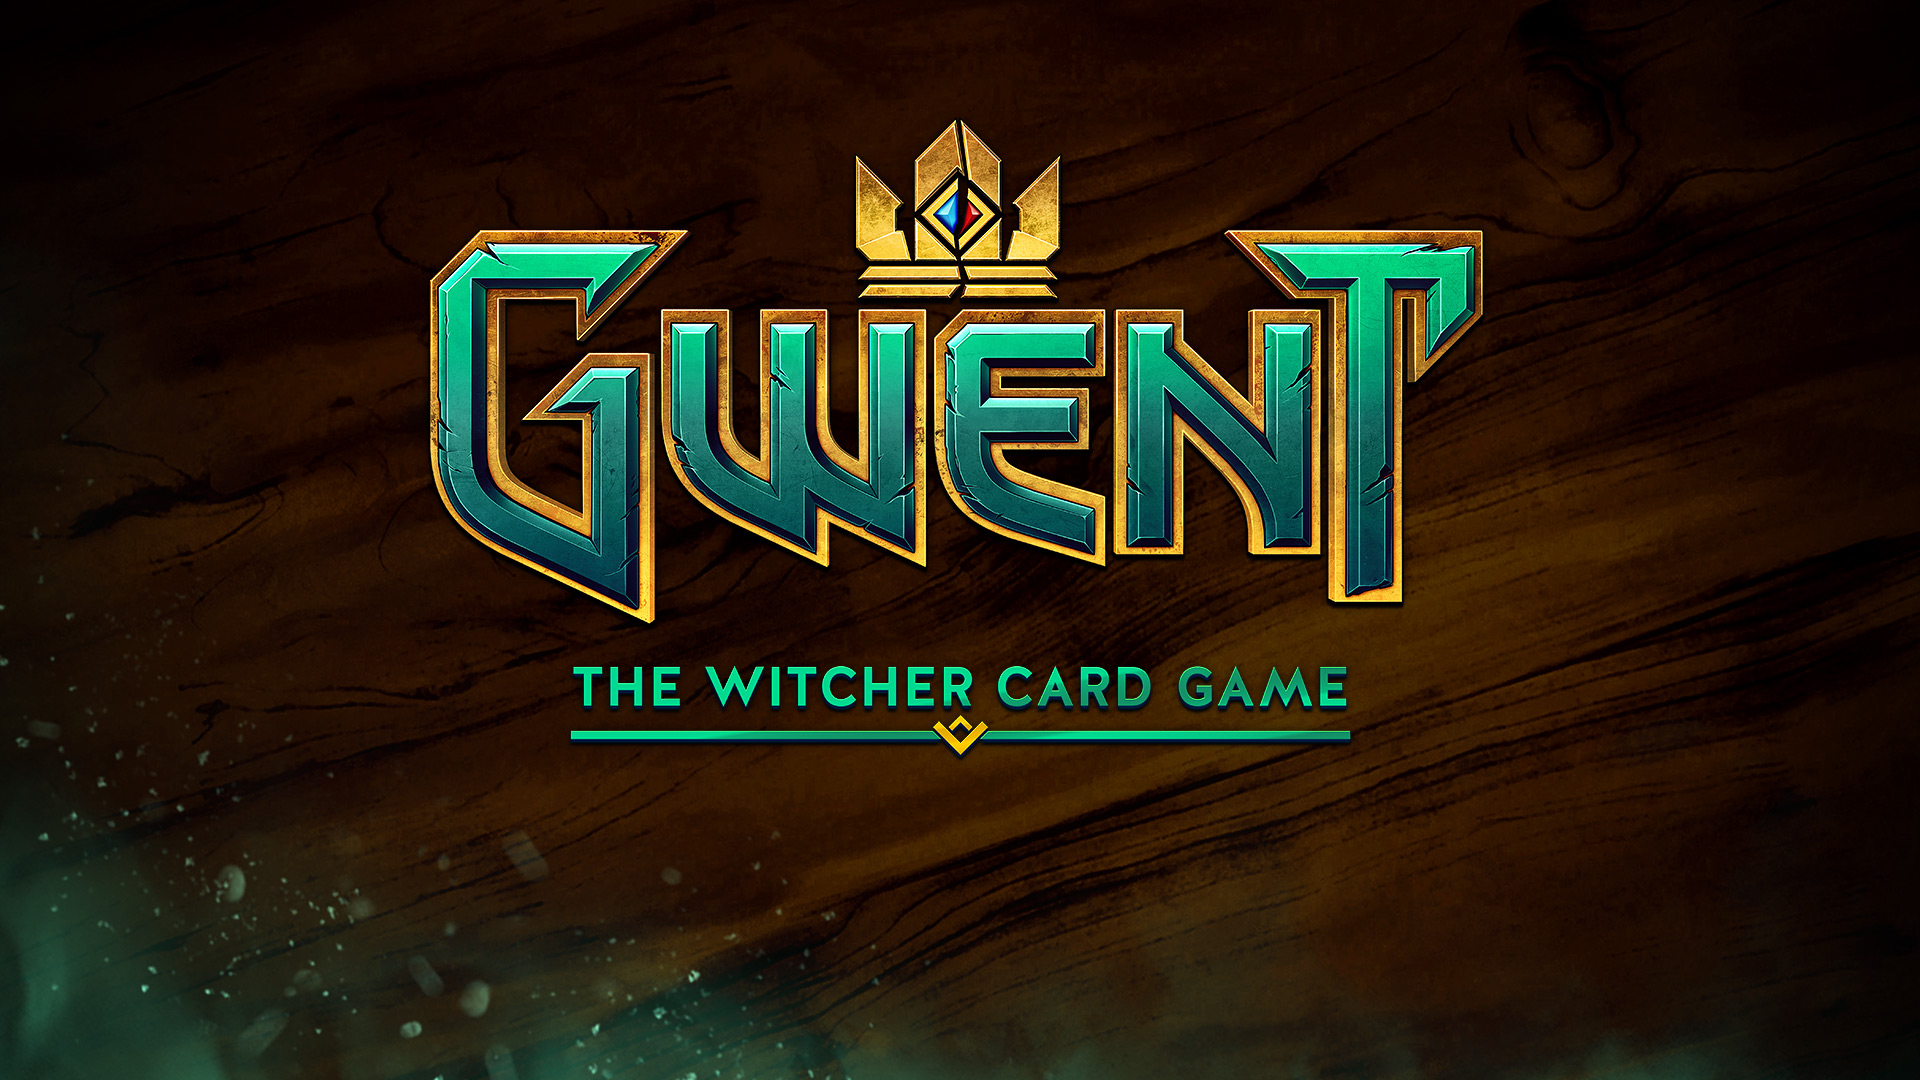 GWENT_The_Witcher_Card_Game_1920x1080_EN